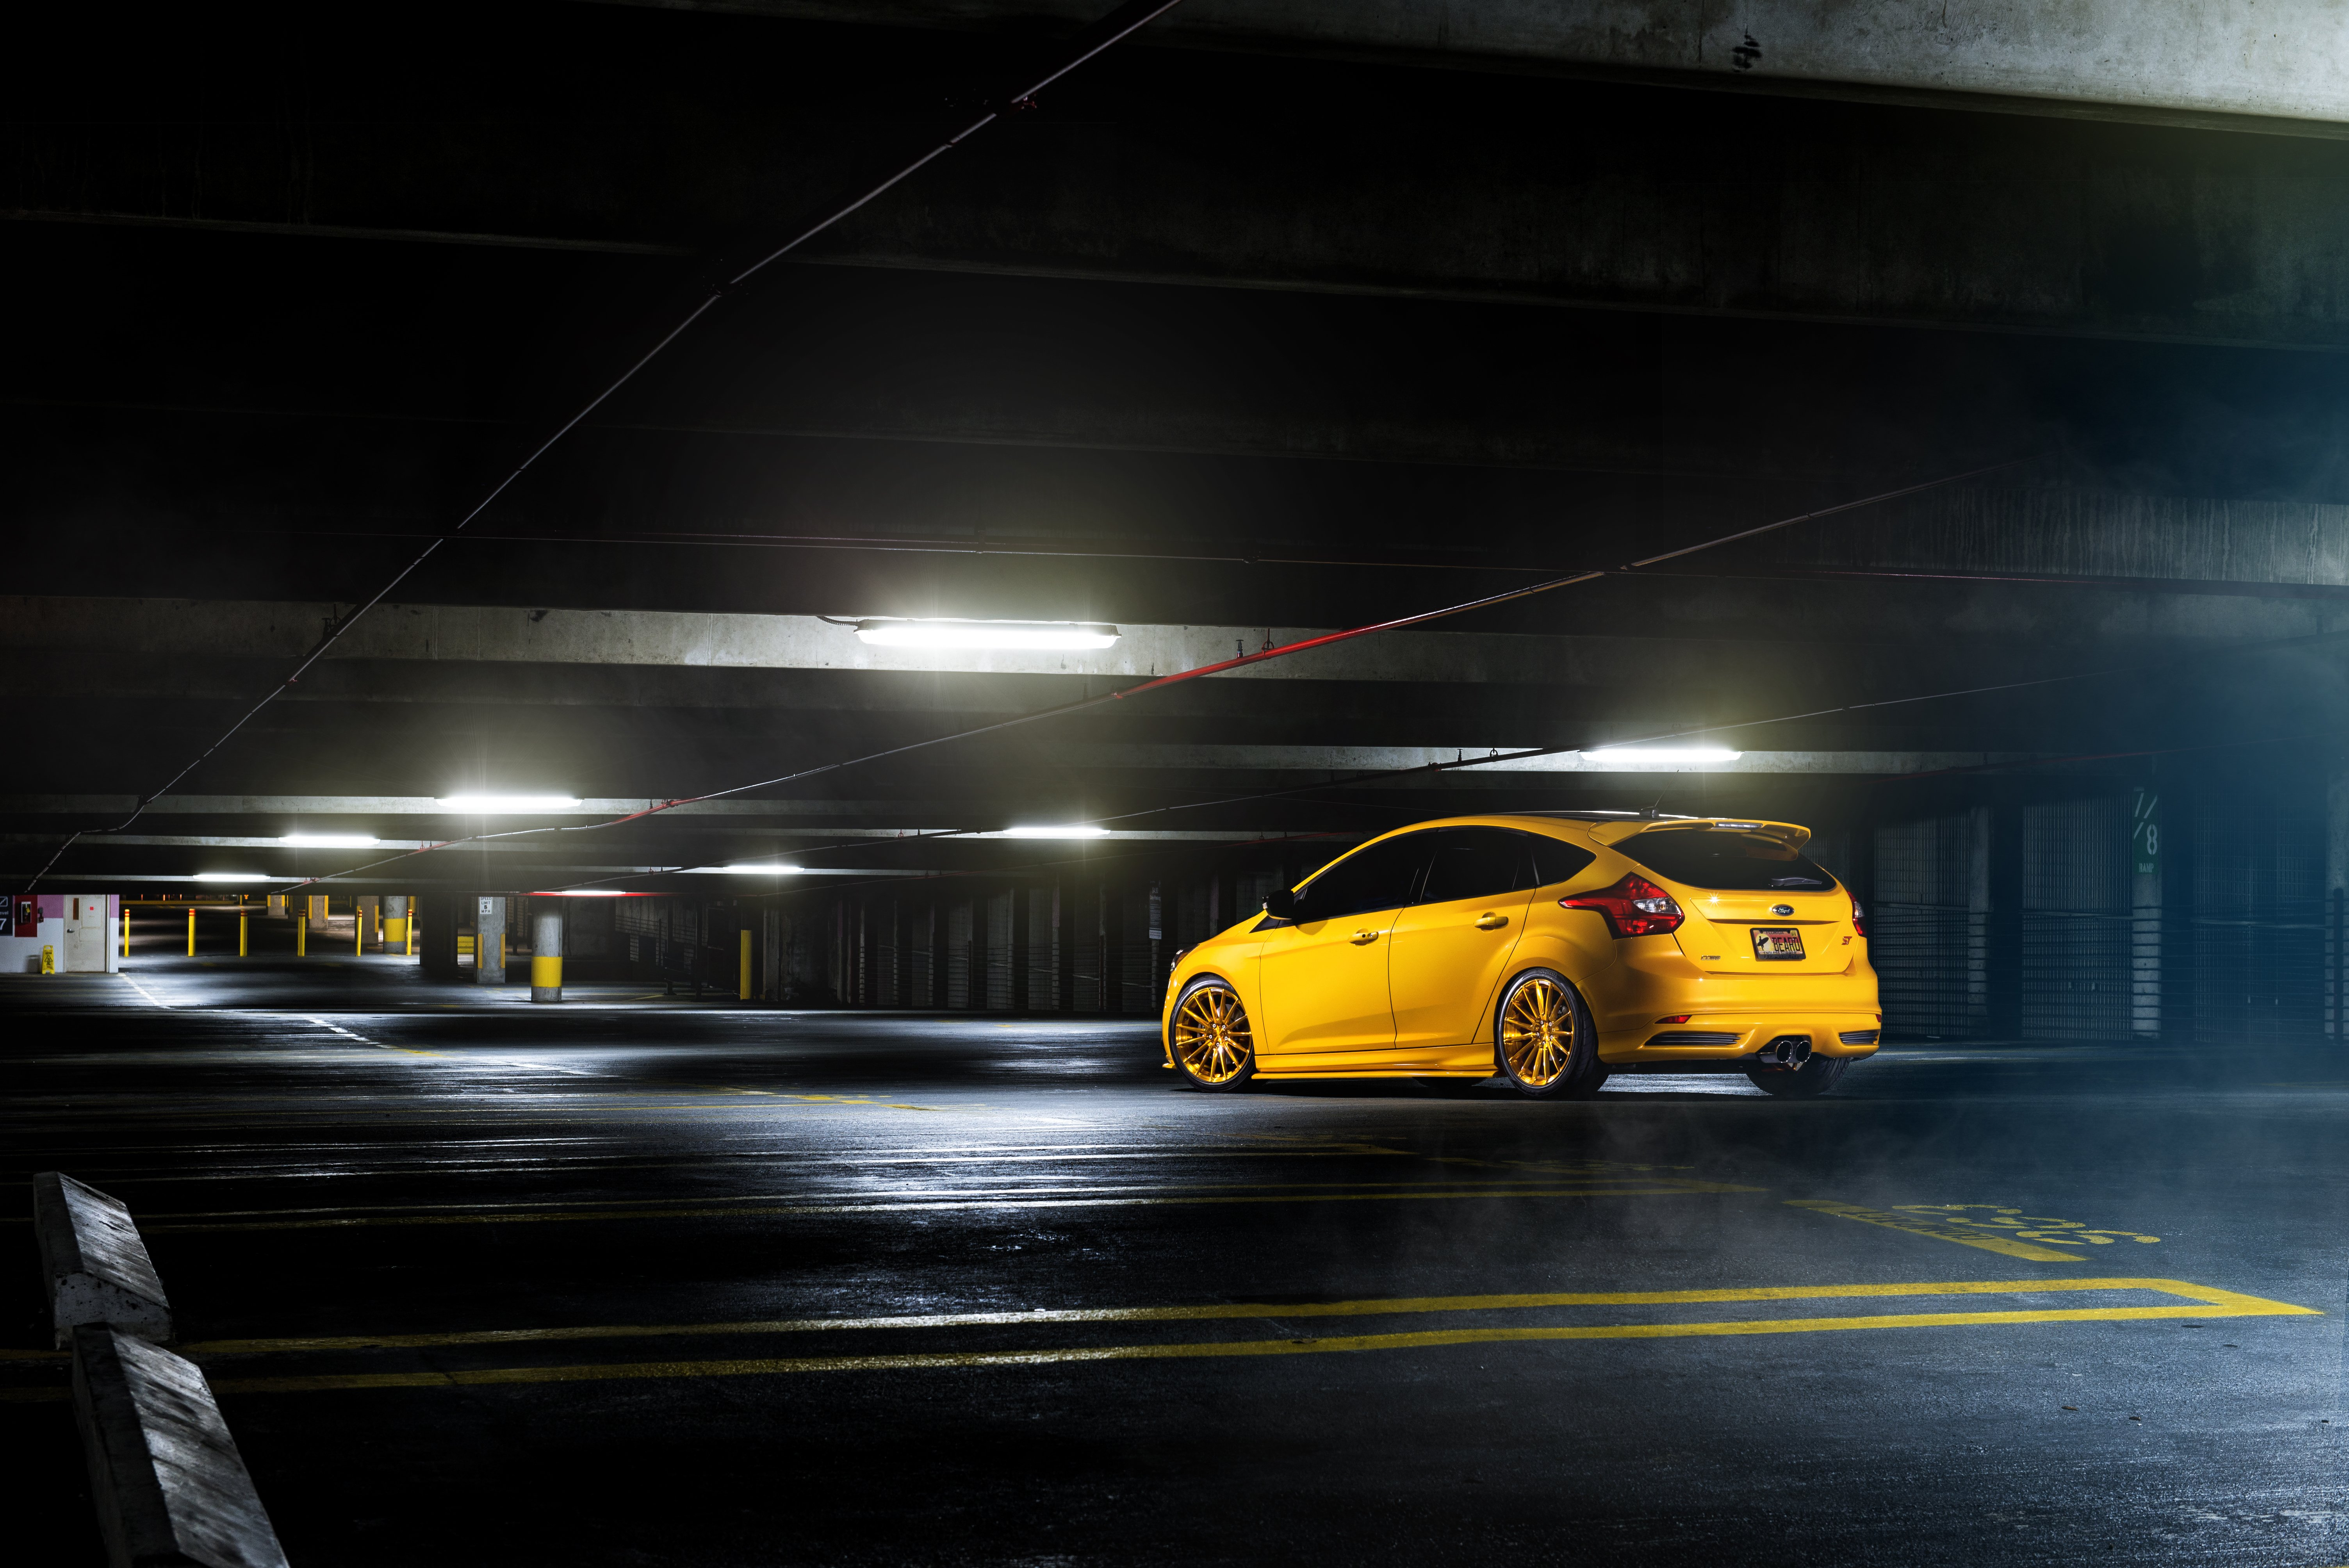 Ford Focus St Hd Wallpapers 500251587 Candela Mousdall